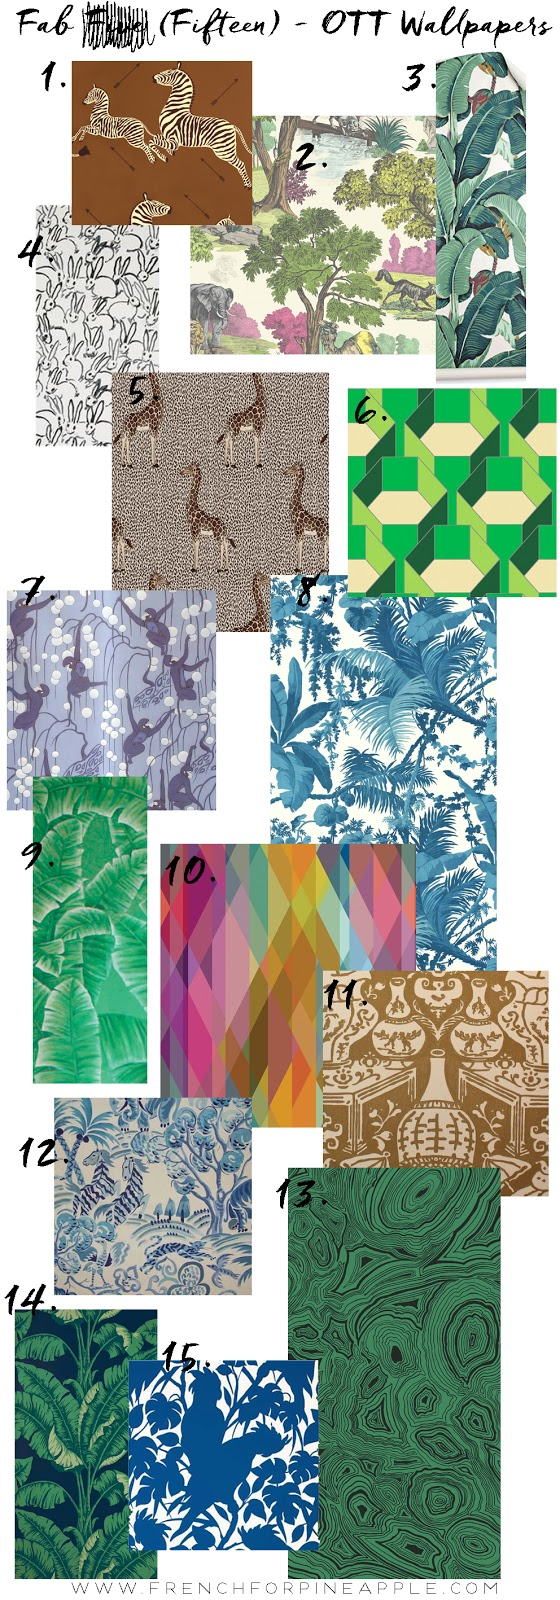 Fab Five Triple Whammy OTT Wallpapers - French For Pineapple Blog